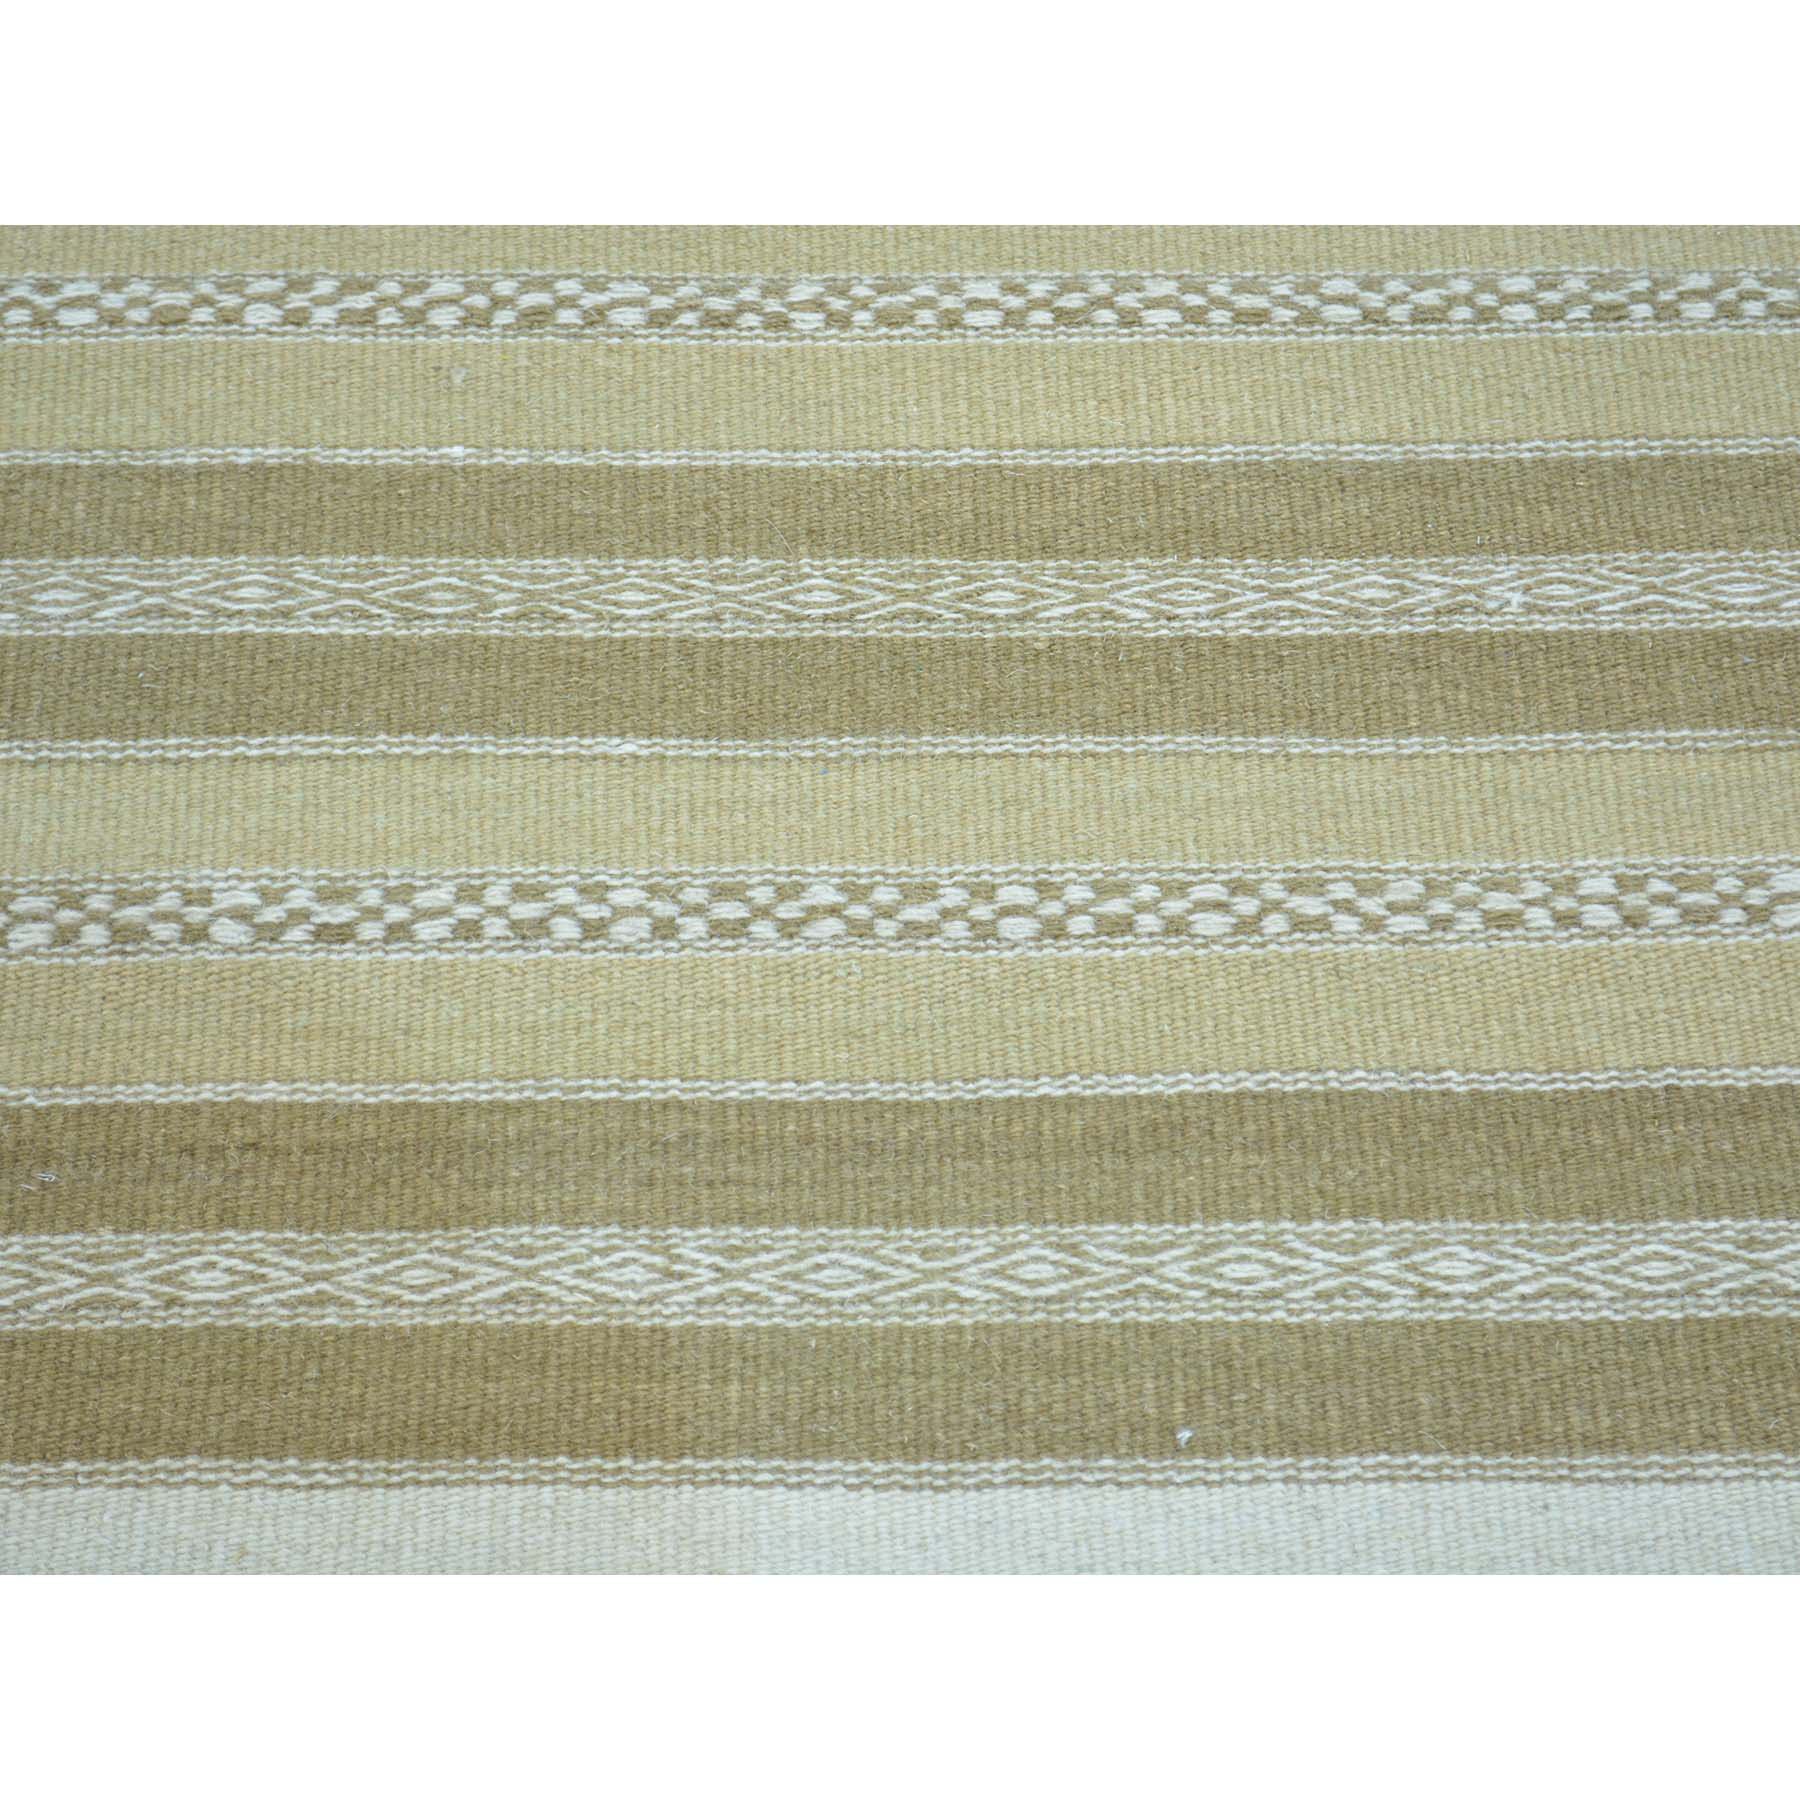 2-9 x5- Striped Flat Weave Durie Kilim Hand Woven Oriental Rug